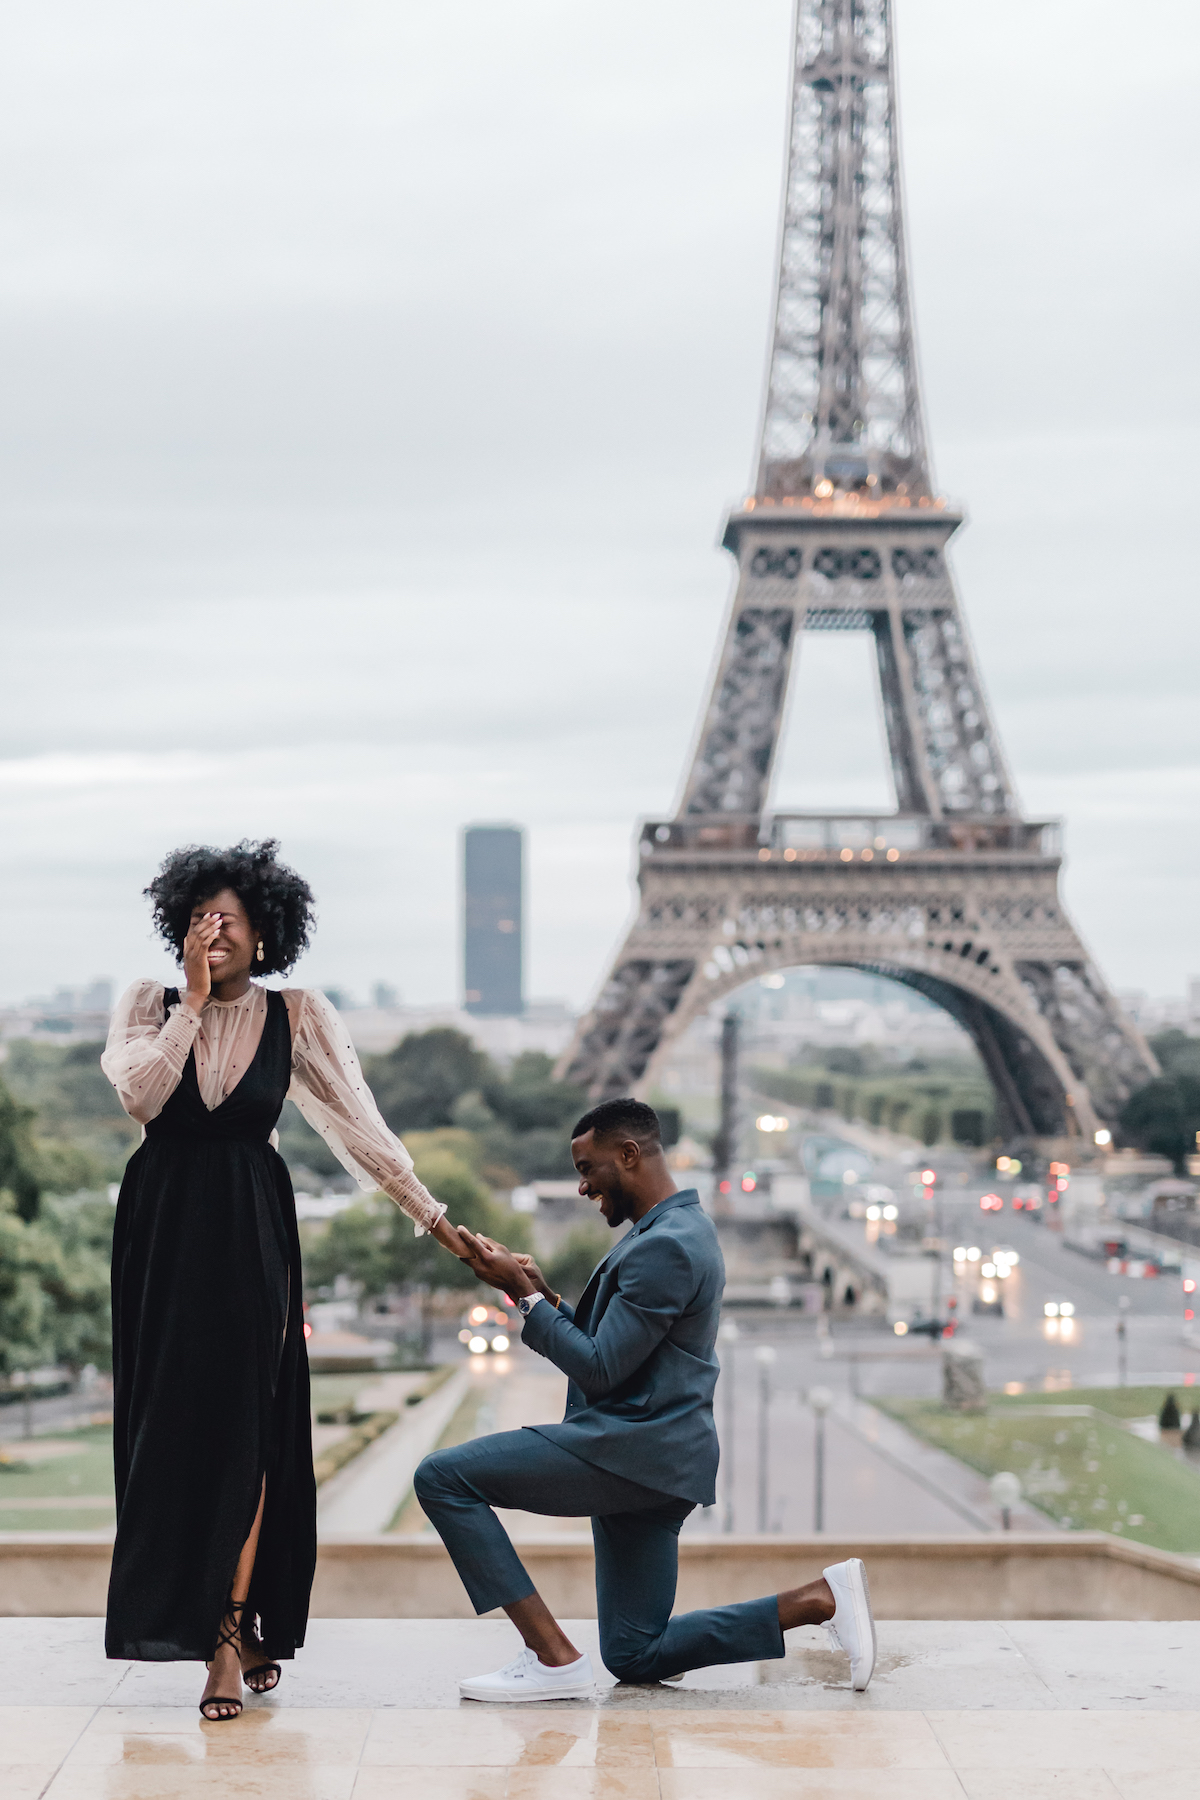 A woman smiles and holds her hand over her eyes while her boyfriend kneels in front of her with a ring, proposing to her in front of the Eiffel Tower in Paris, France.